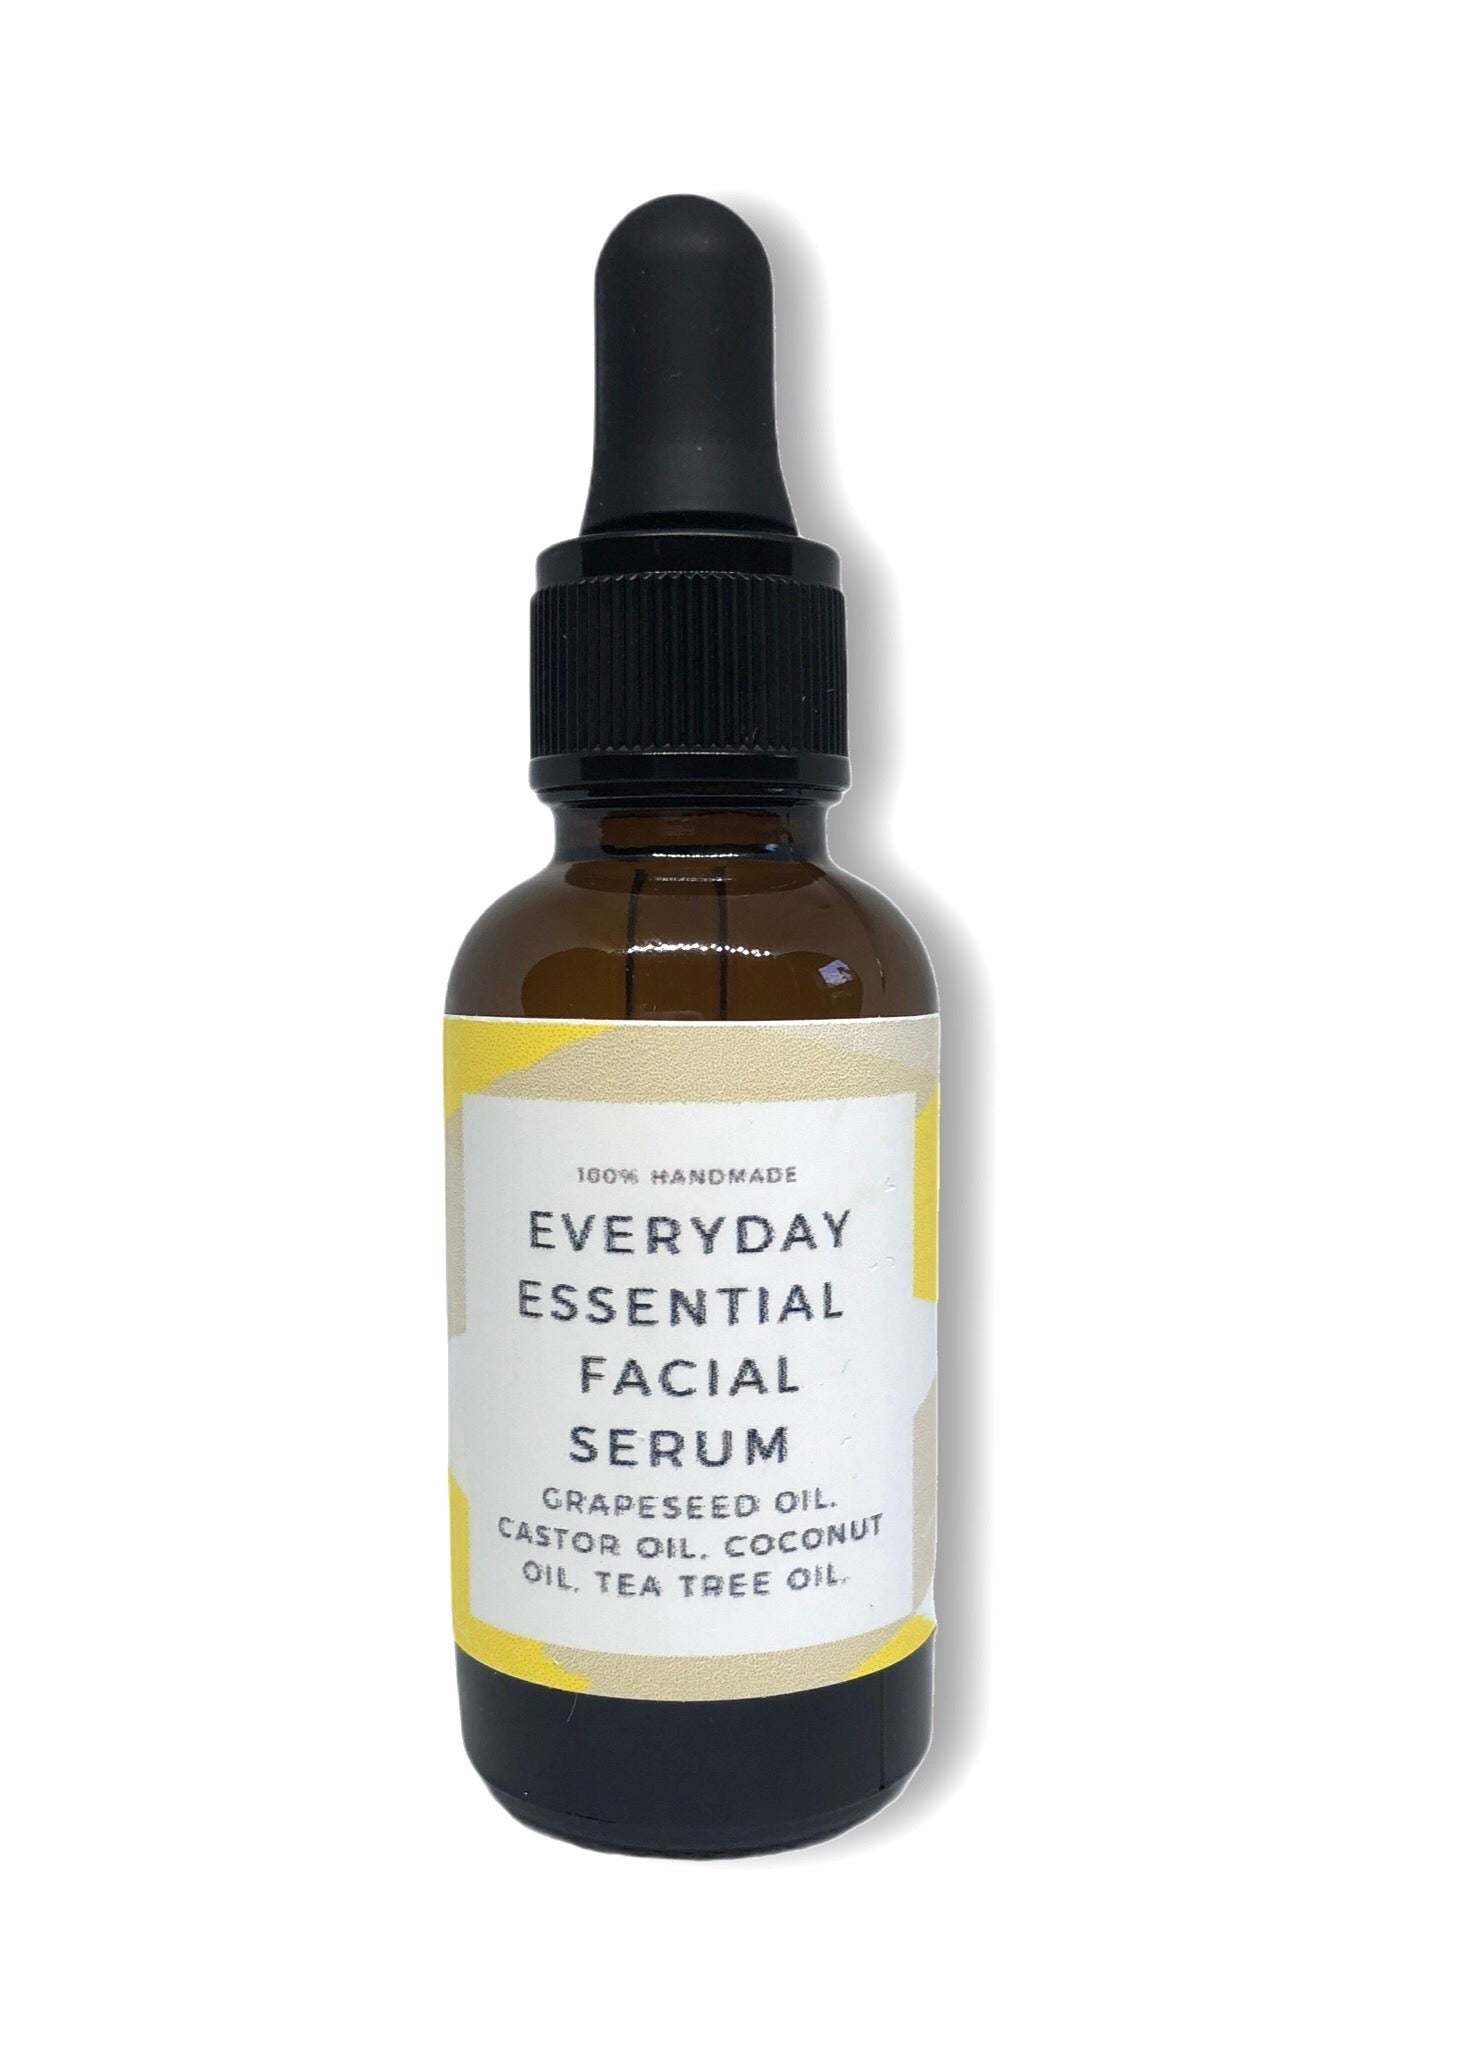 Everyday Facial Serum